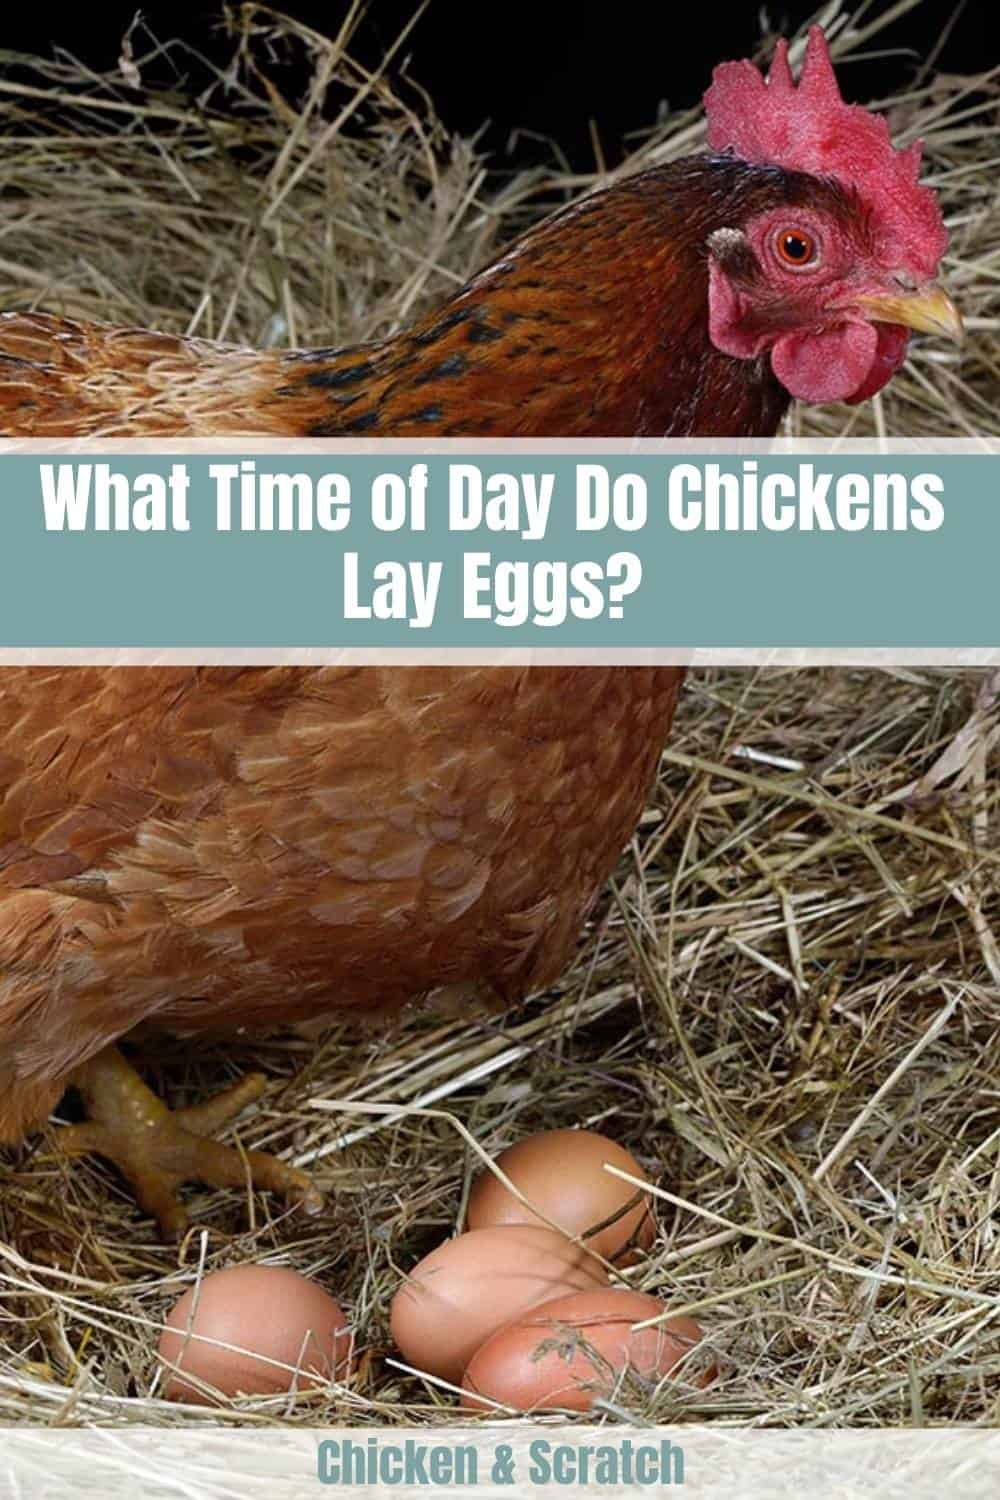 when do chickens lay eggs in a day